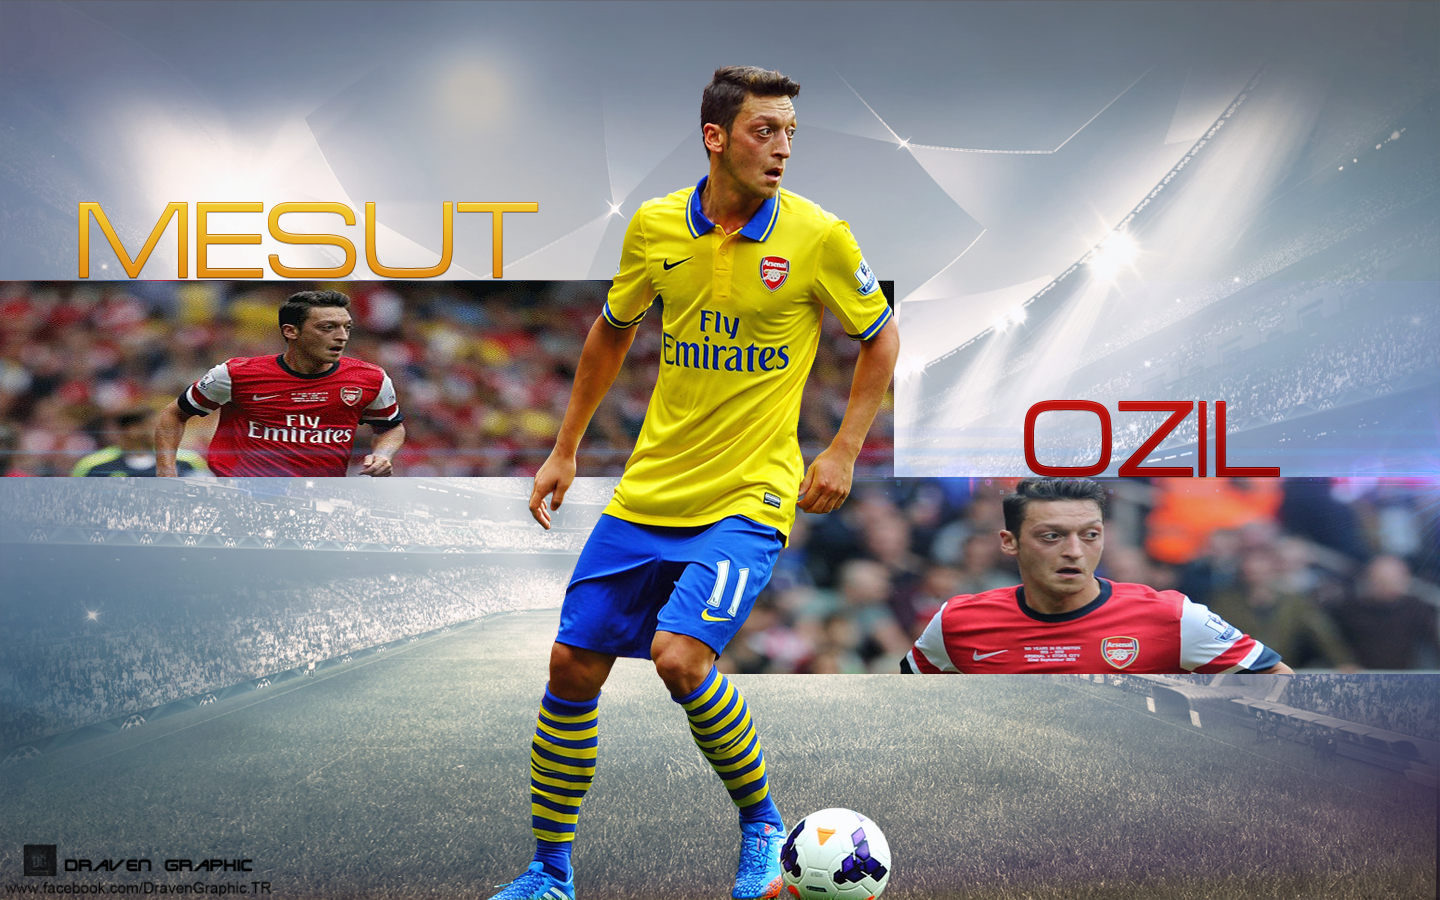 Mesut Ozl By DravenGraphic On DeviantART